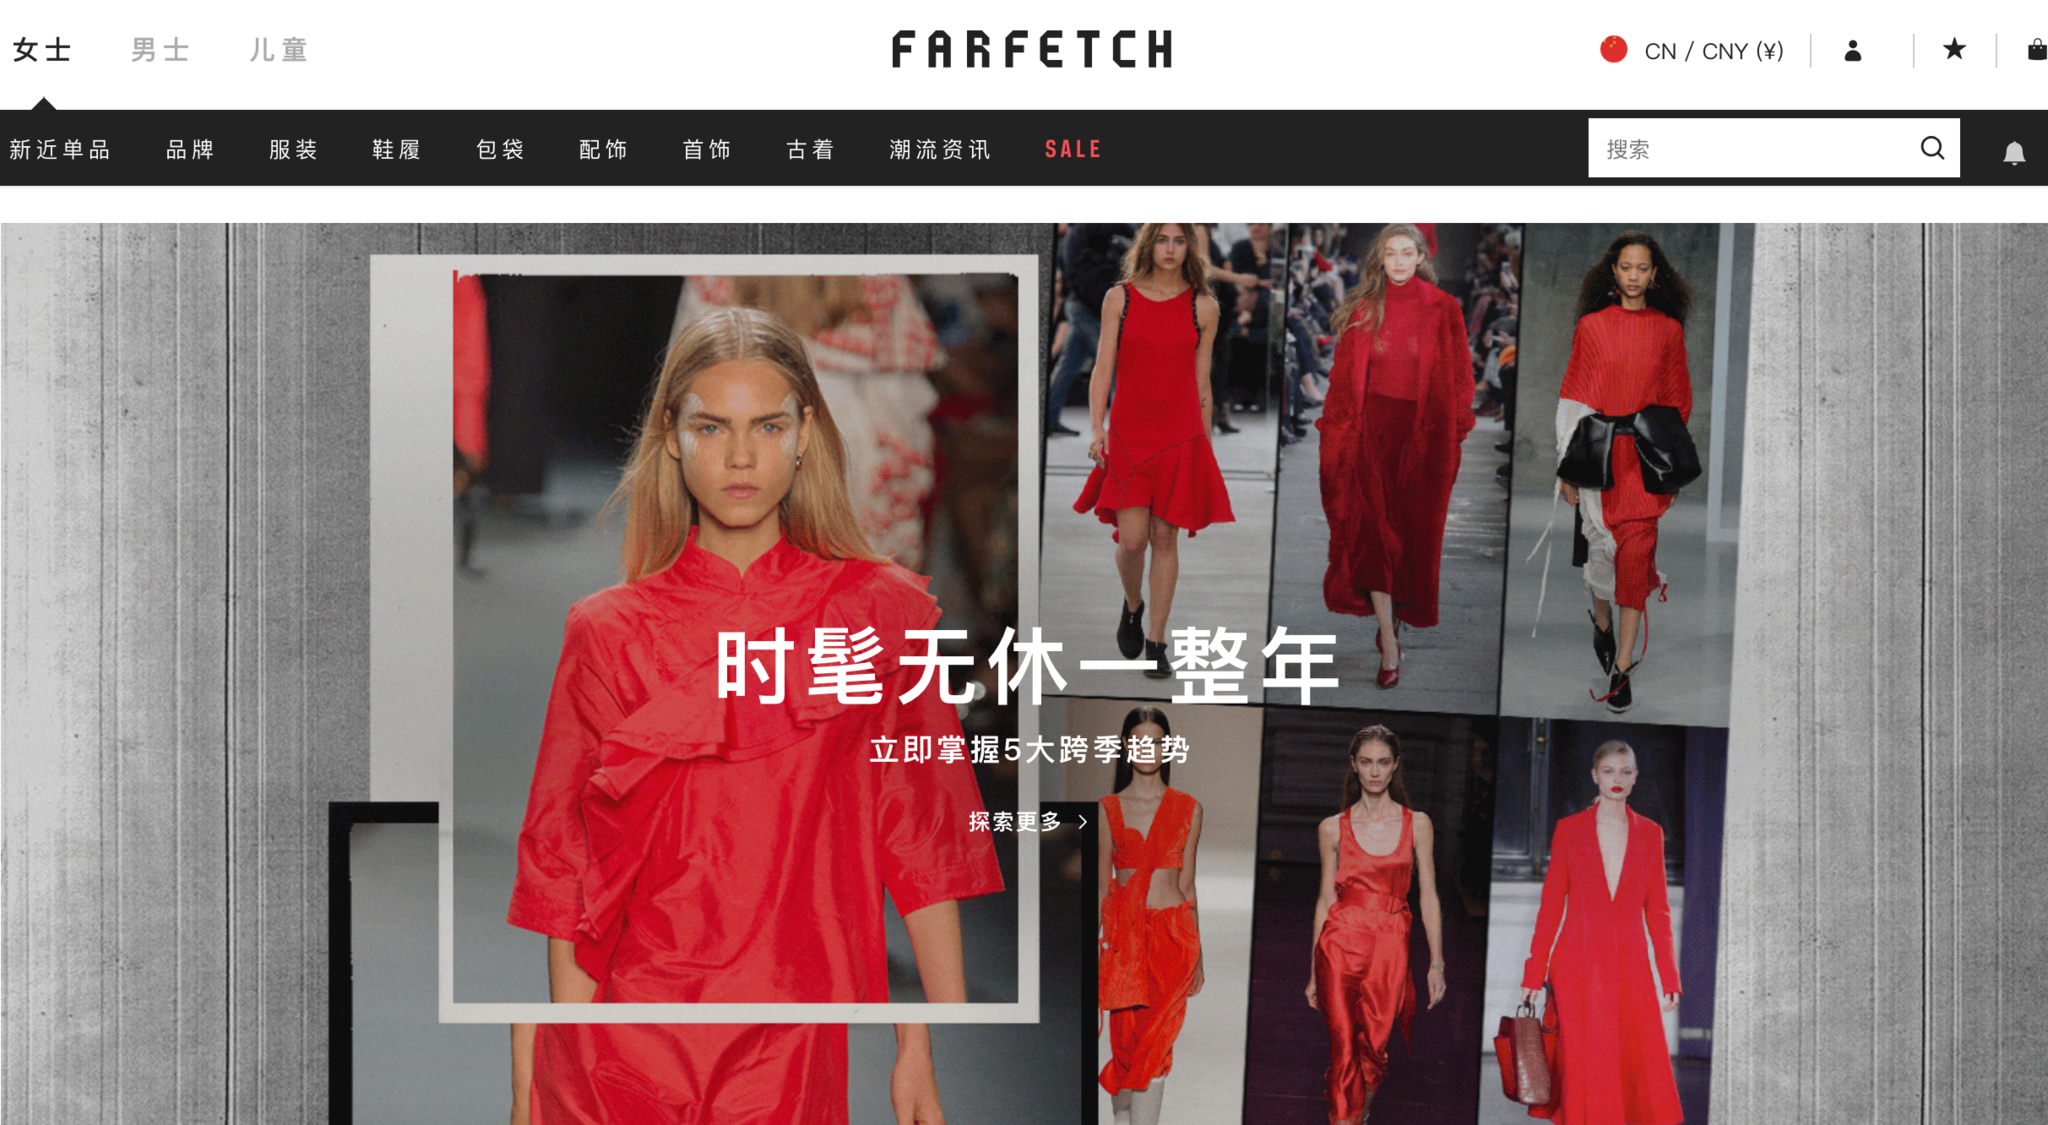 Farfetch with JD.com in China